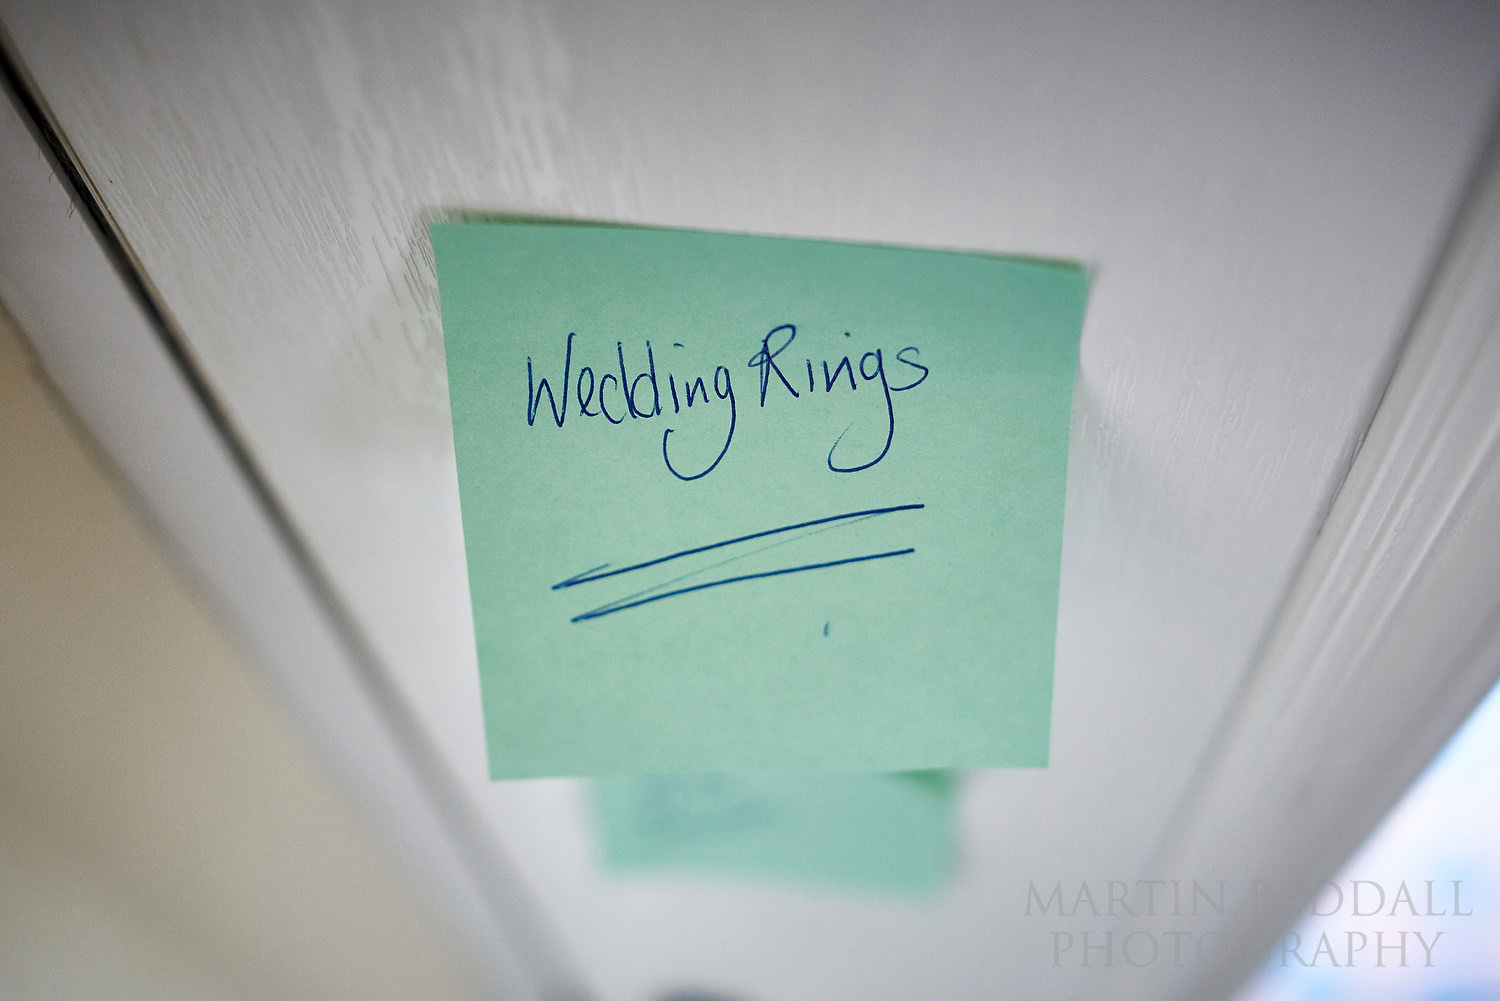 Note to remember the wedding rings